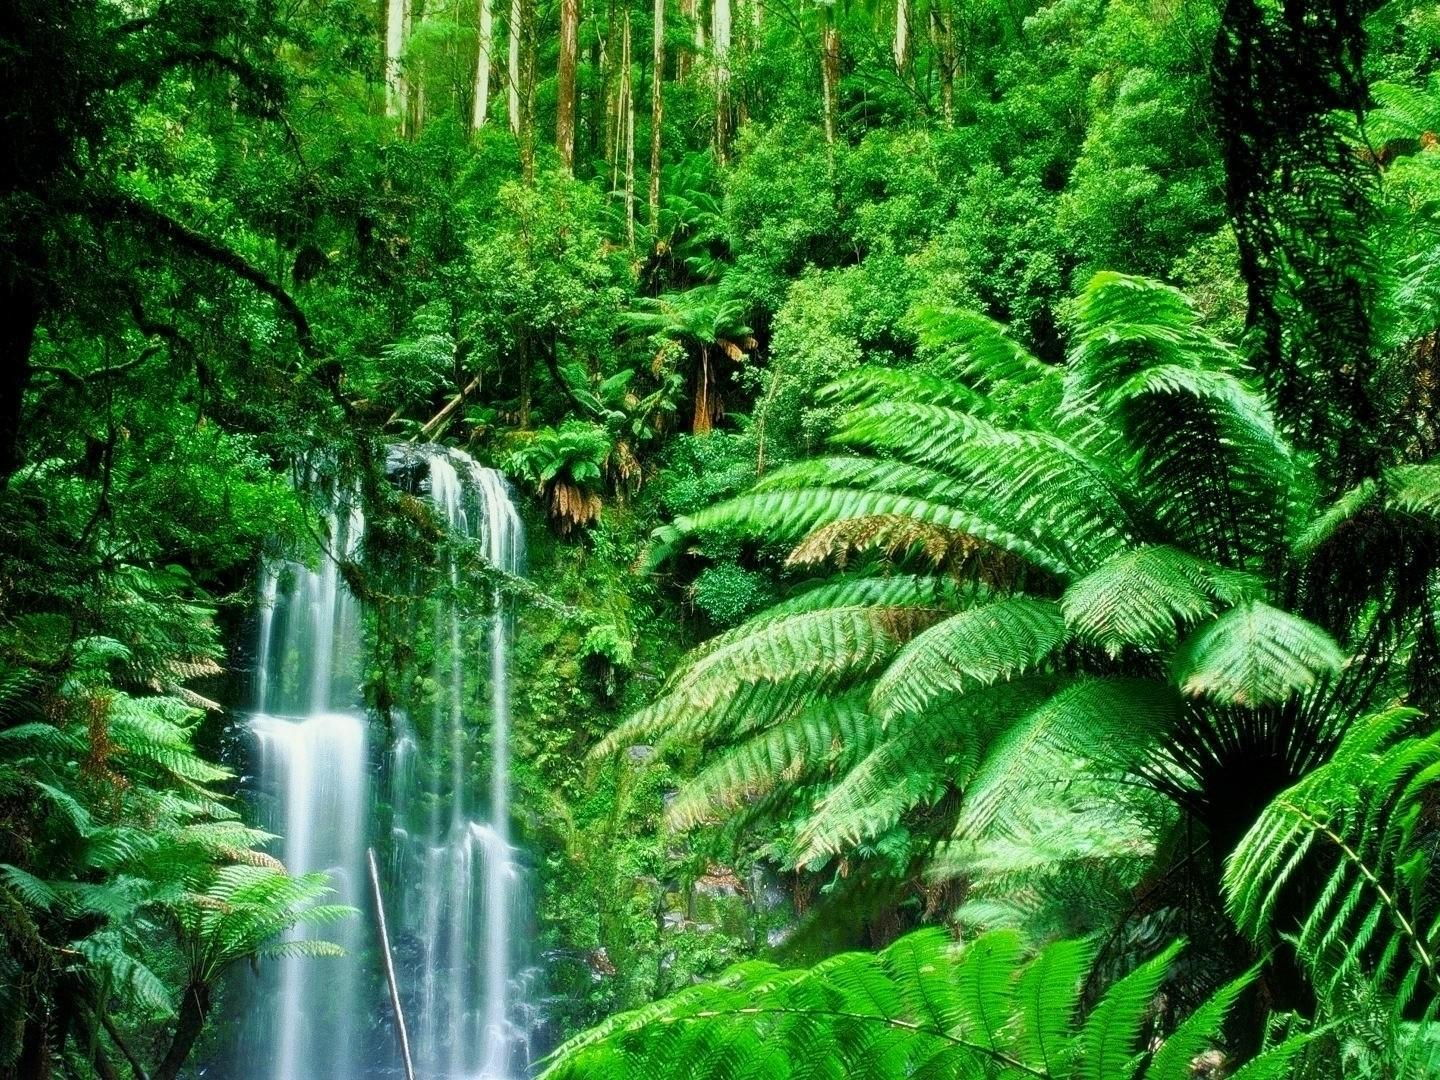 week1 of 6 wk English resources, smarts, planning detailed unit of work on Rain Forests Year 3 or 4